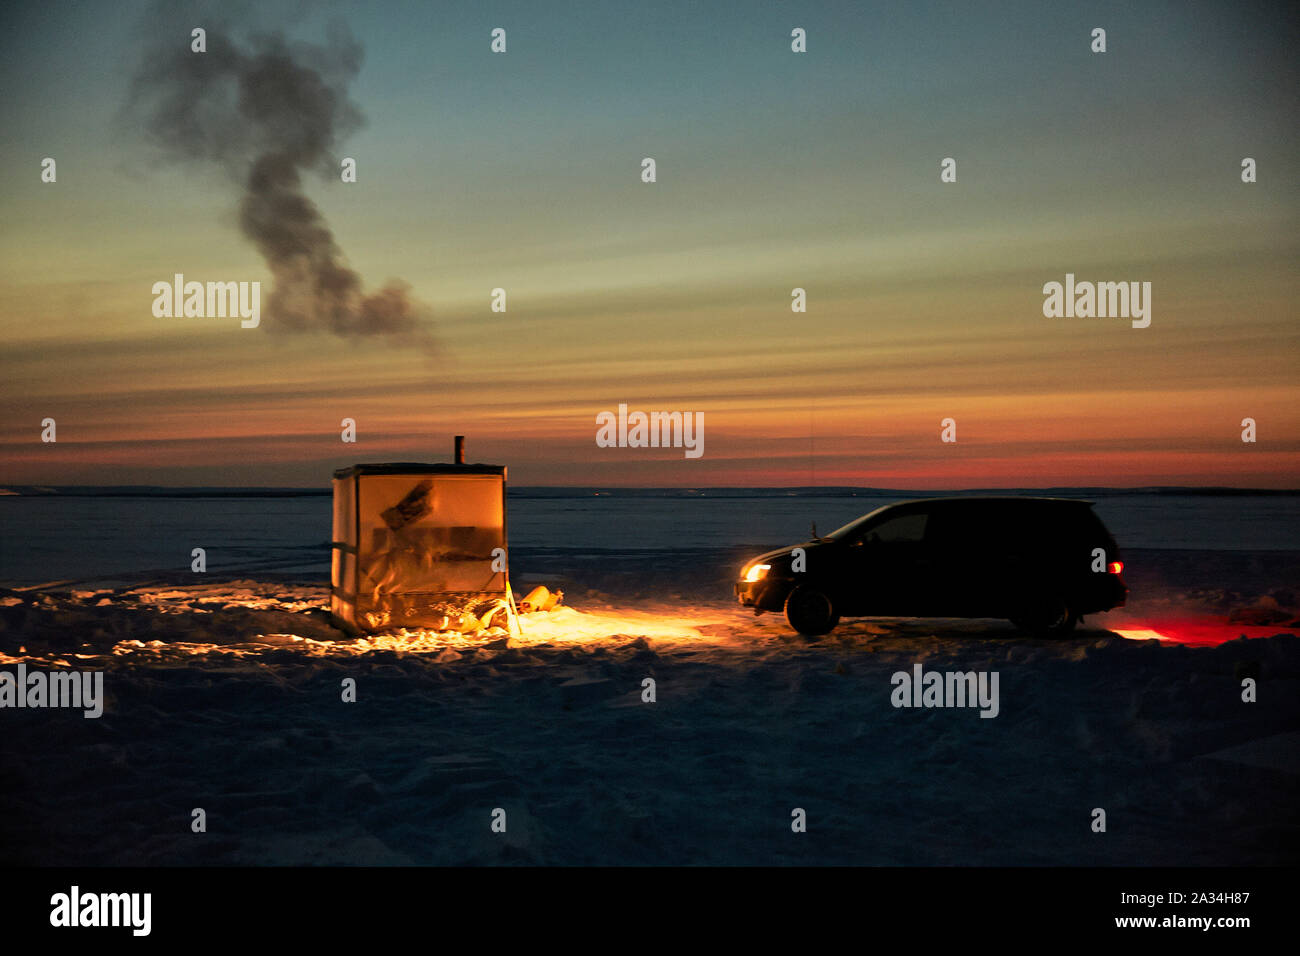 Russia Yakutsk Lena  Simeon Jegorov (53)  fishing on Ice with car and small house -45 degrees celcius  3-02-2013 photo: Jaco Klamer Stock Photo